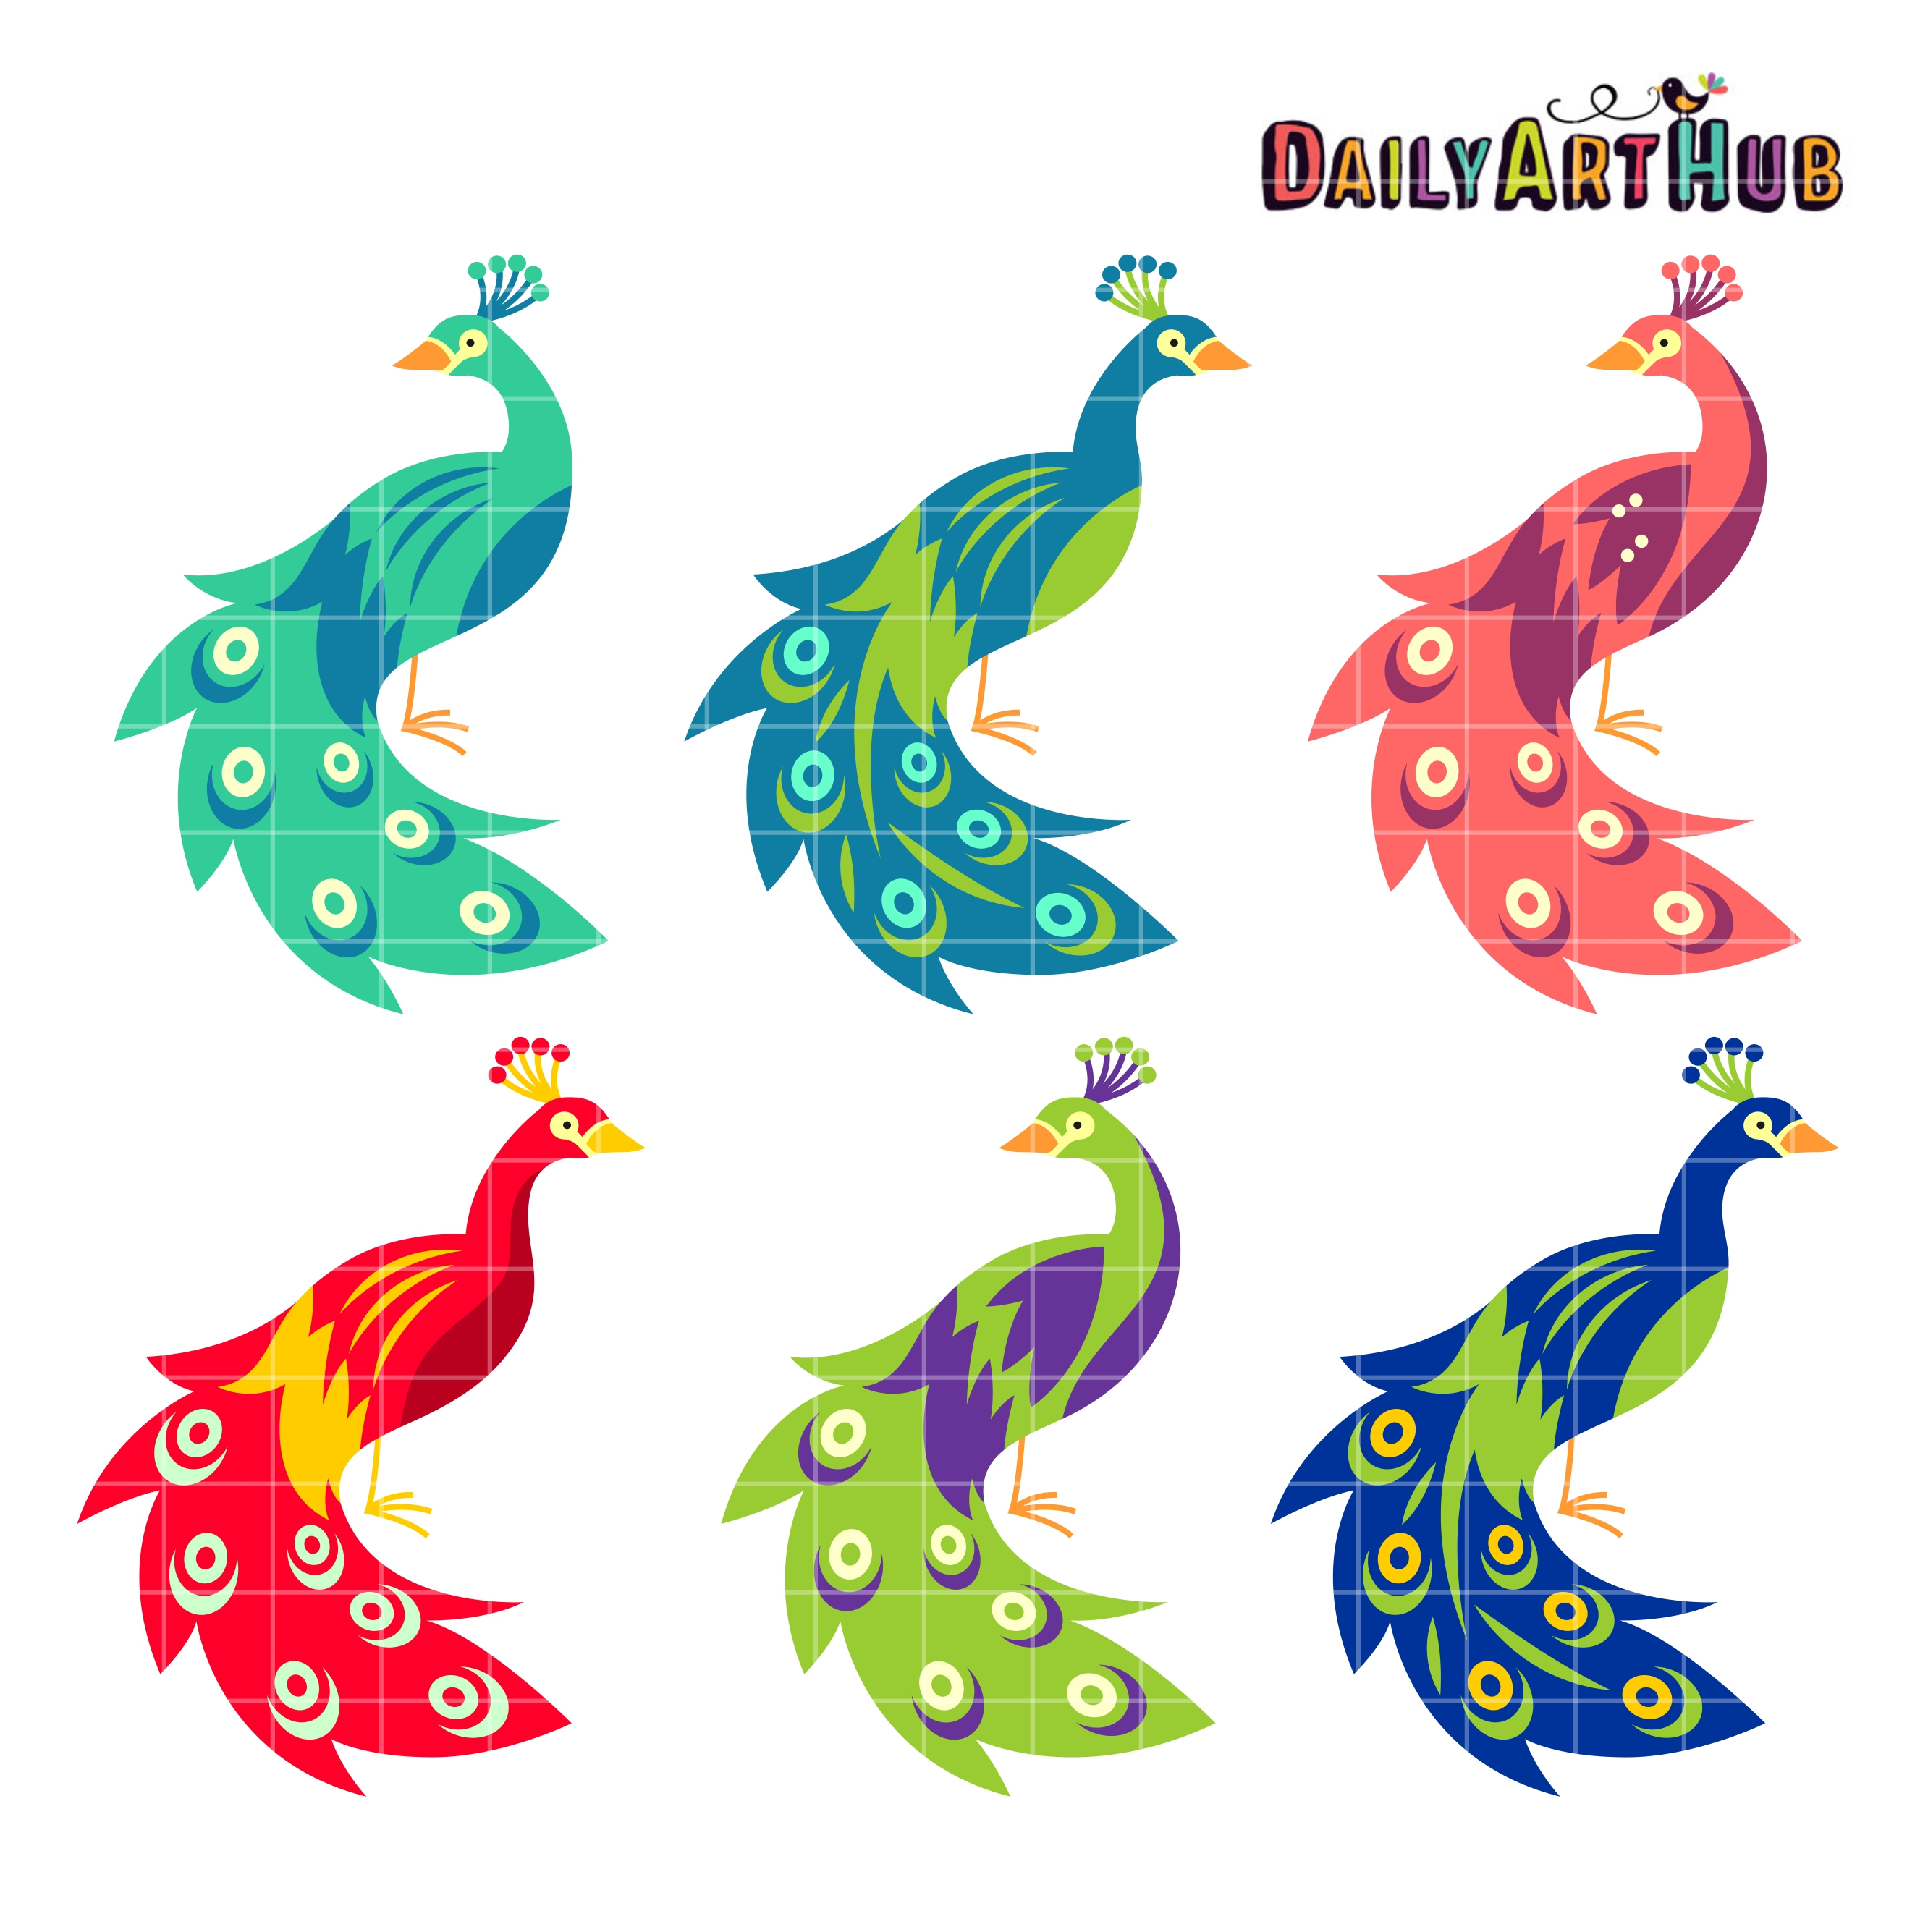 peacocks clip art set daily art hub free clip art everyday rh dailyarthub com peacock clipart free